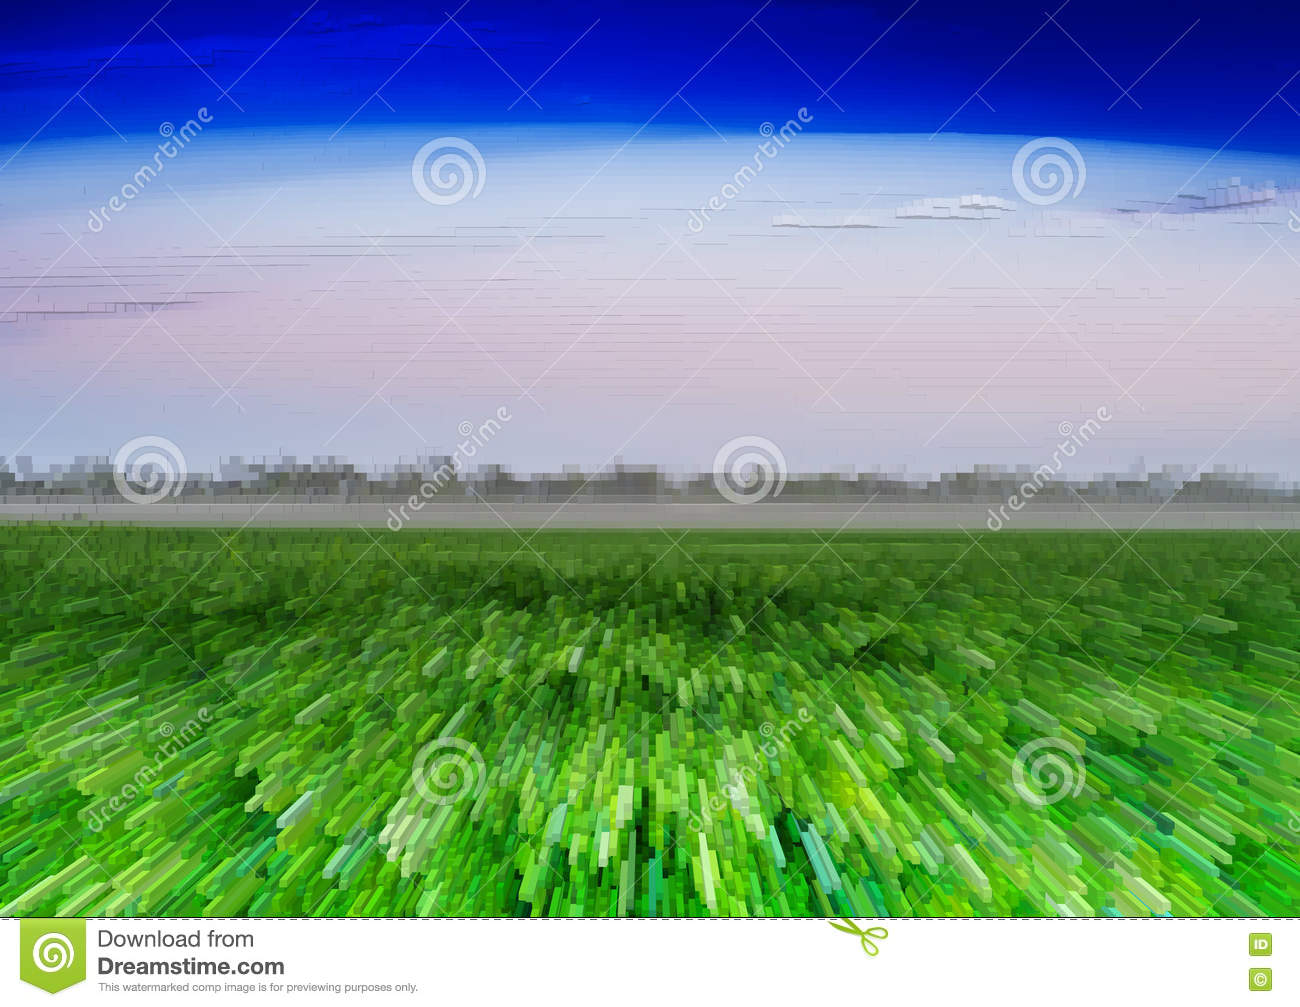 Horizontal vivid green field 3d extruded cubes landscape backgro